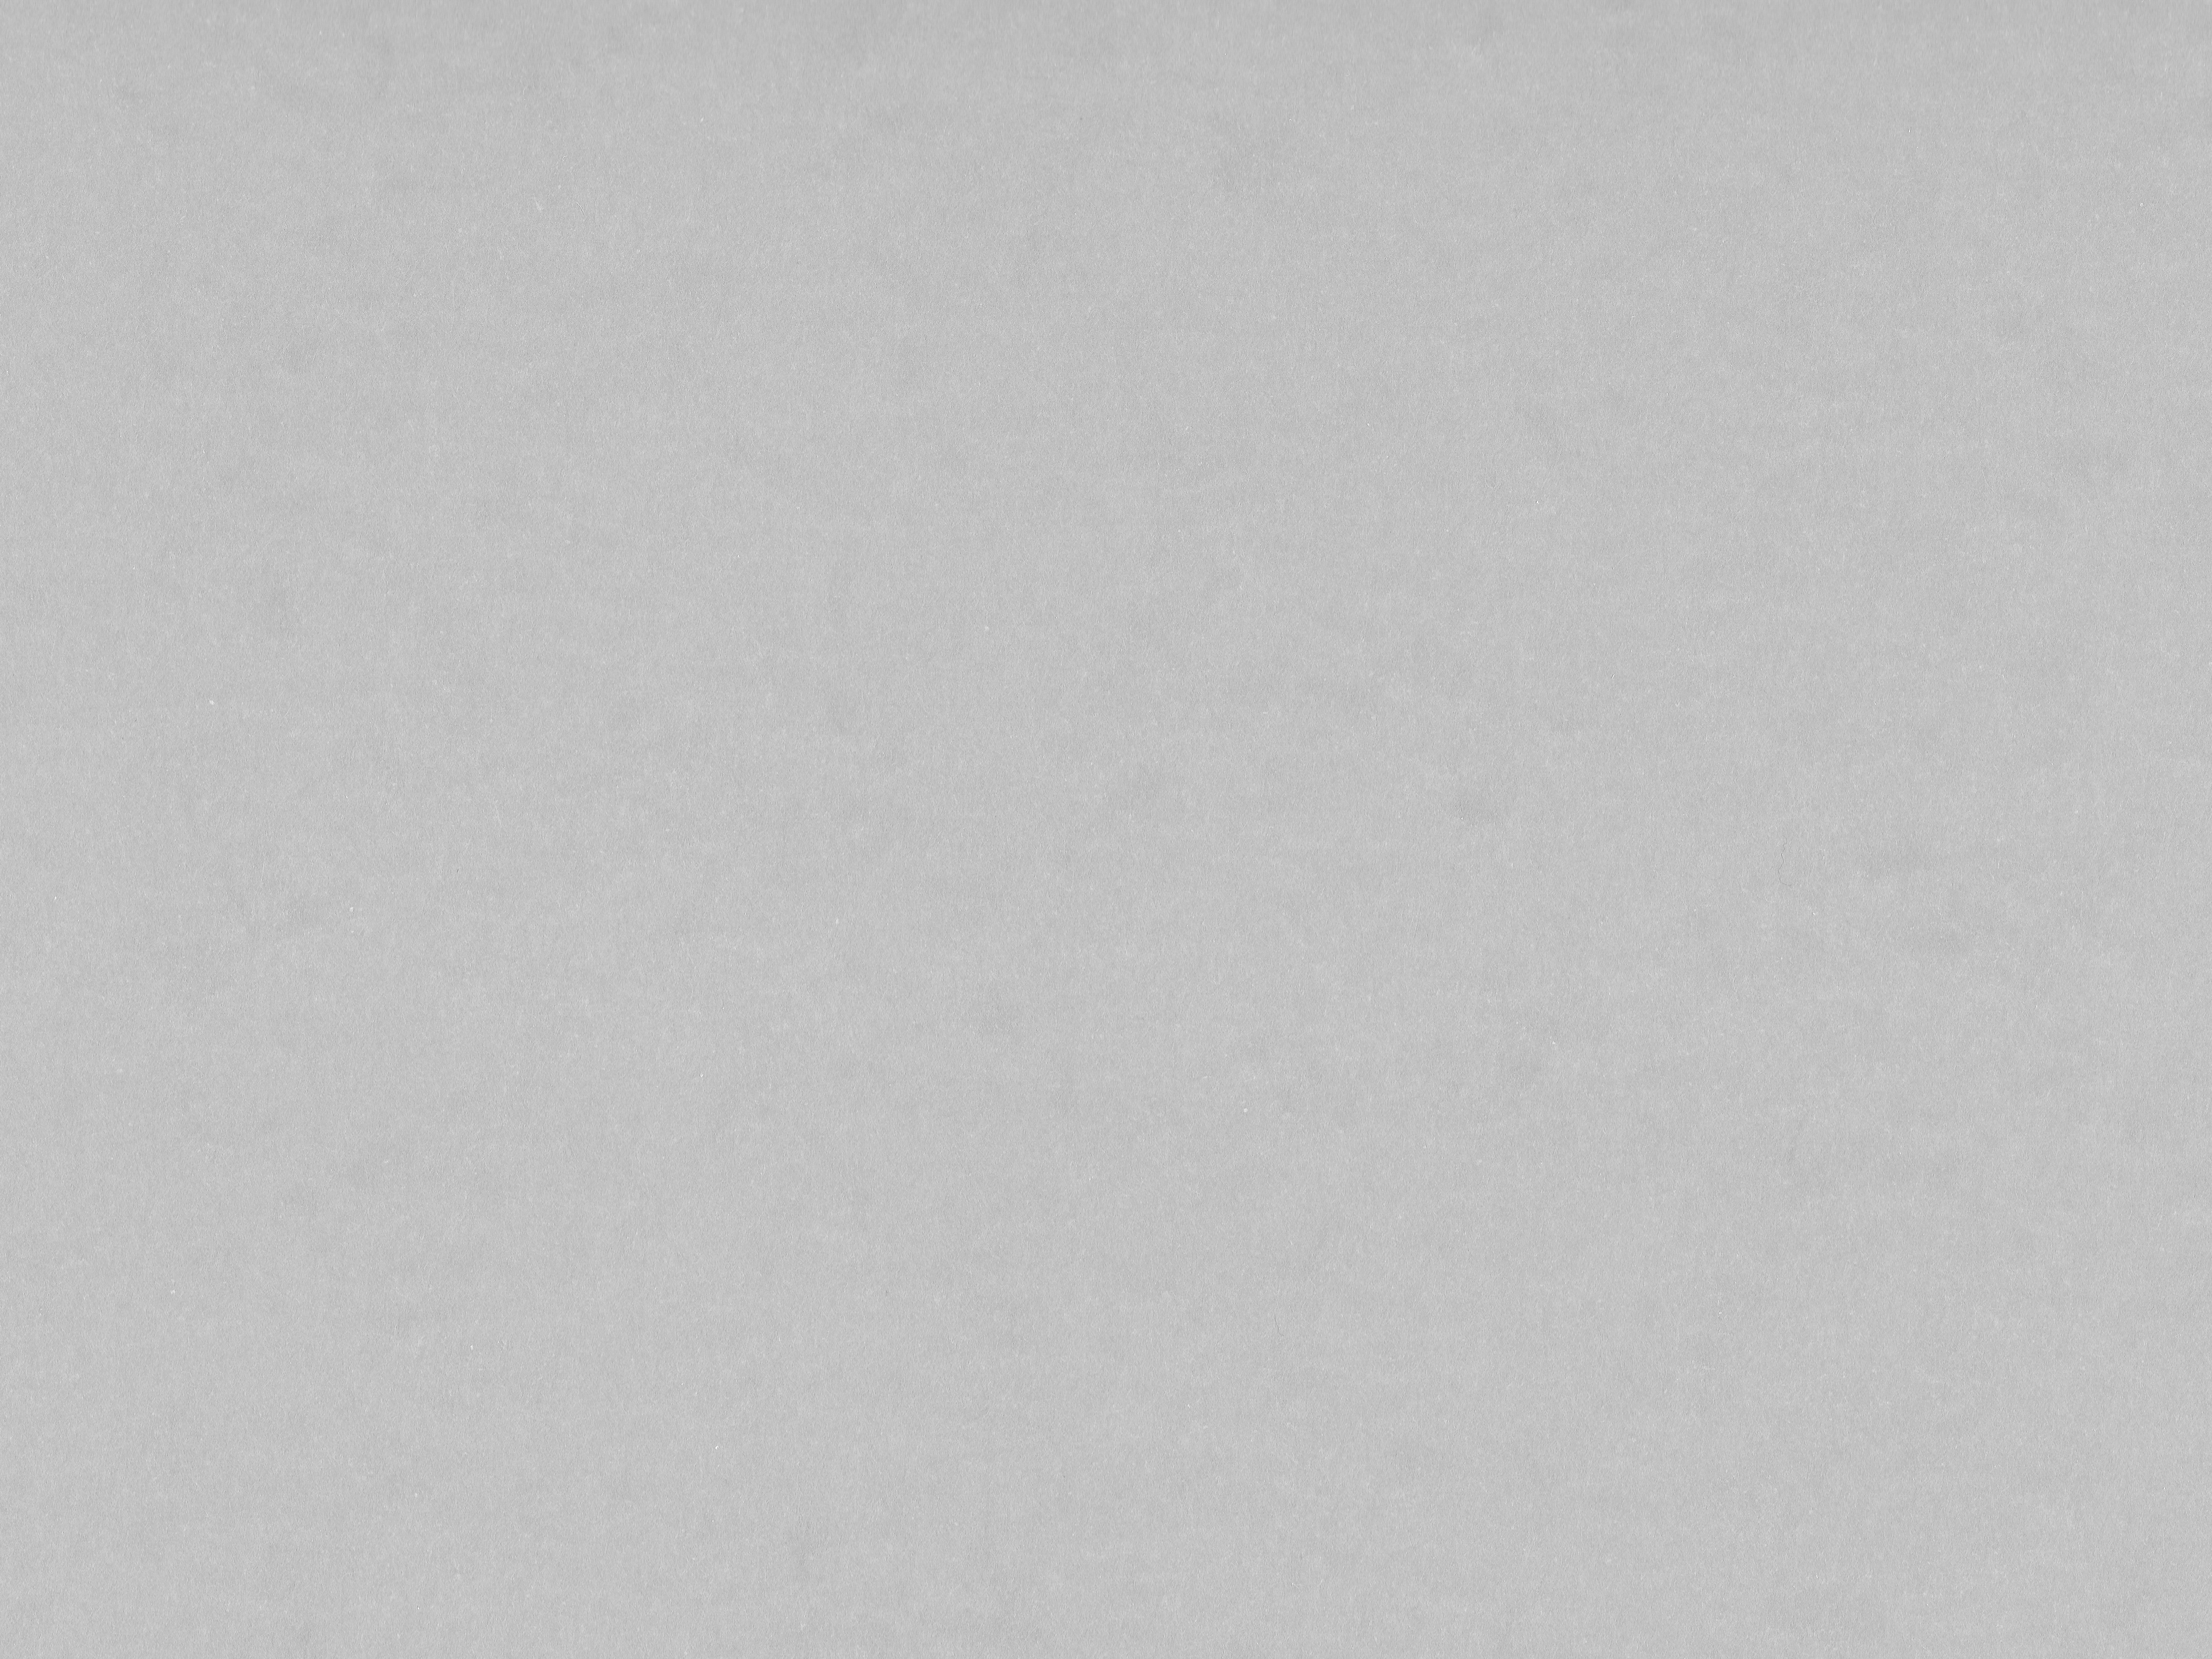 Gray Card Stock Paper Texture Picture Free Photograph